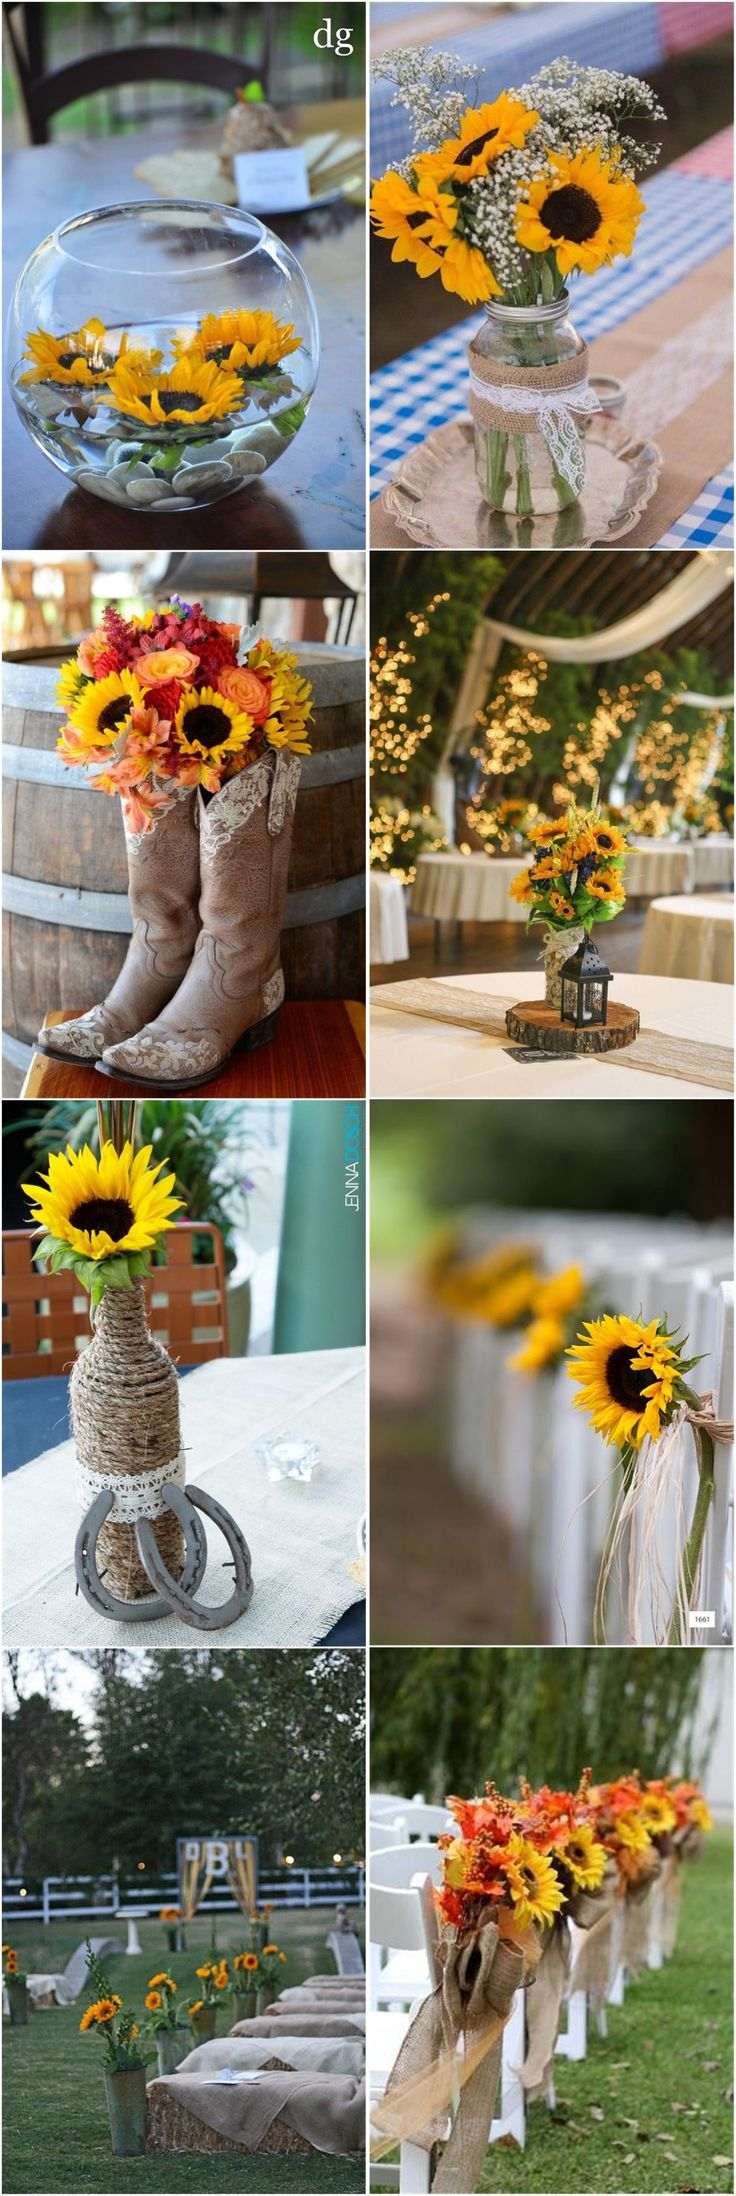 wedding ideas using sunflowers best 20 sunflower decorations ideas on 28340